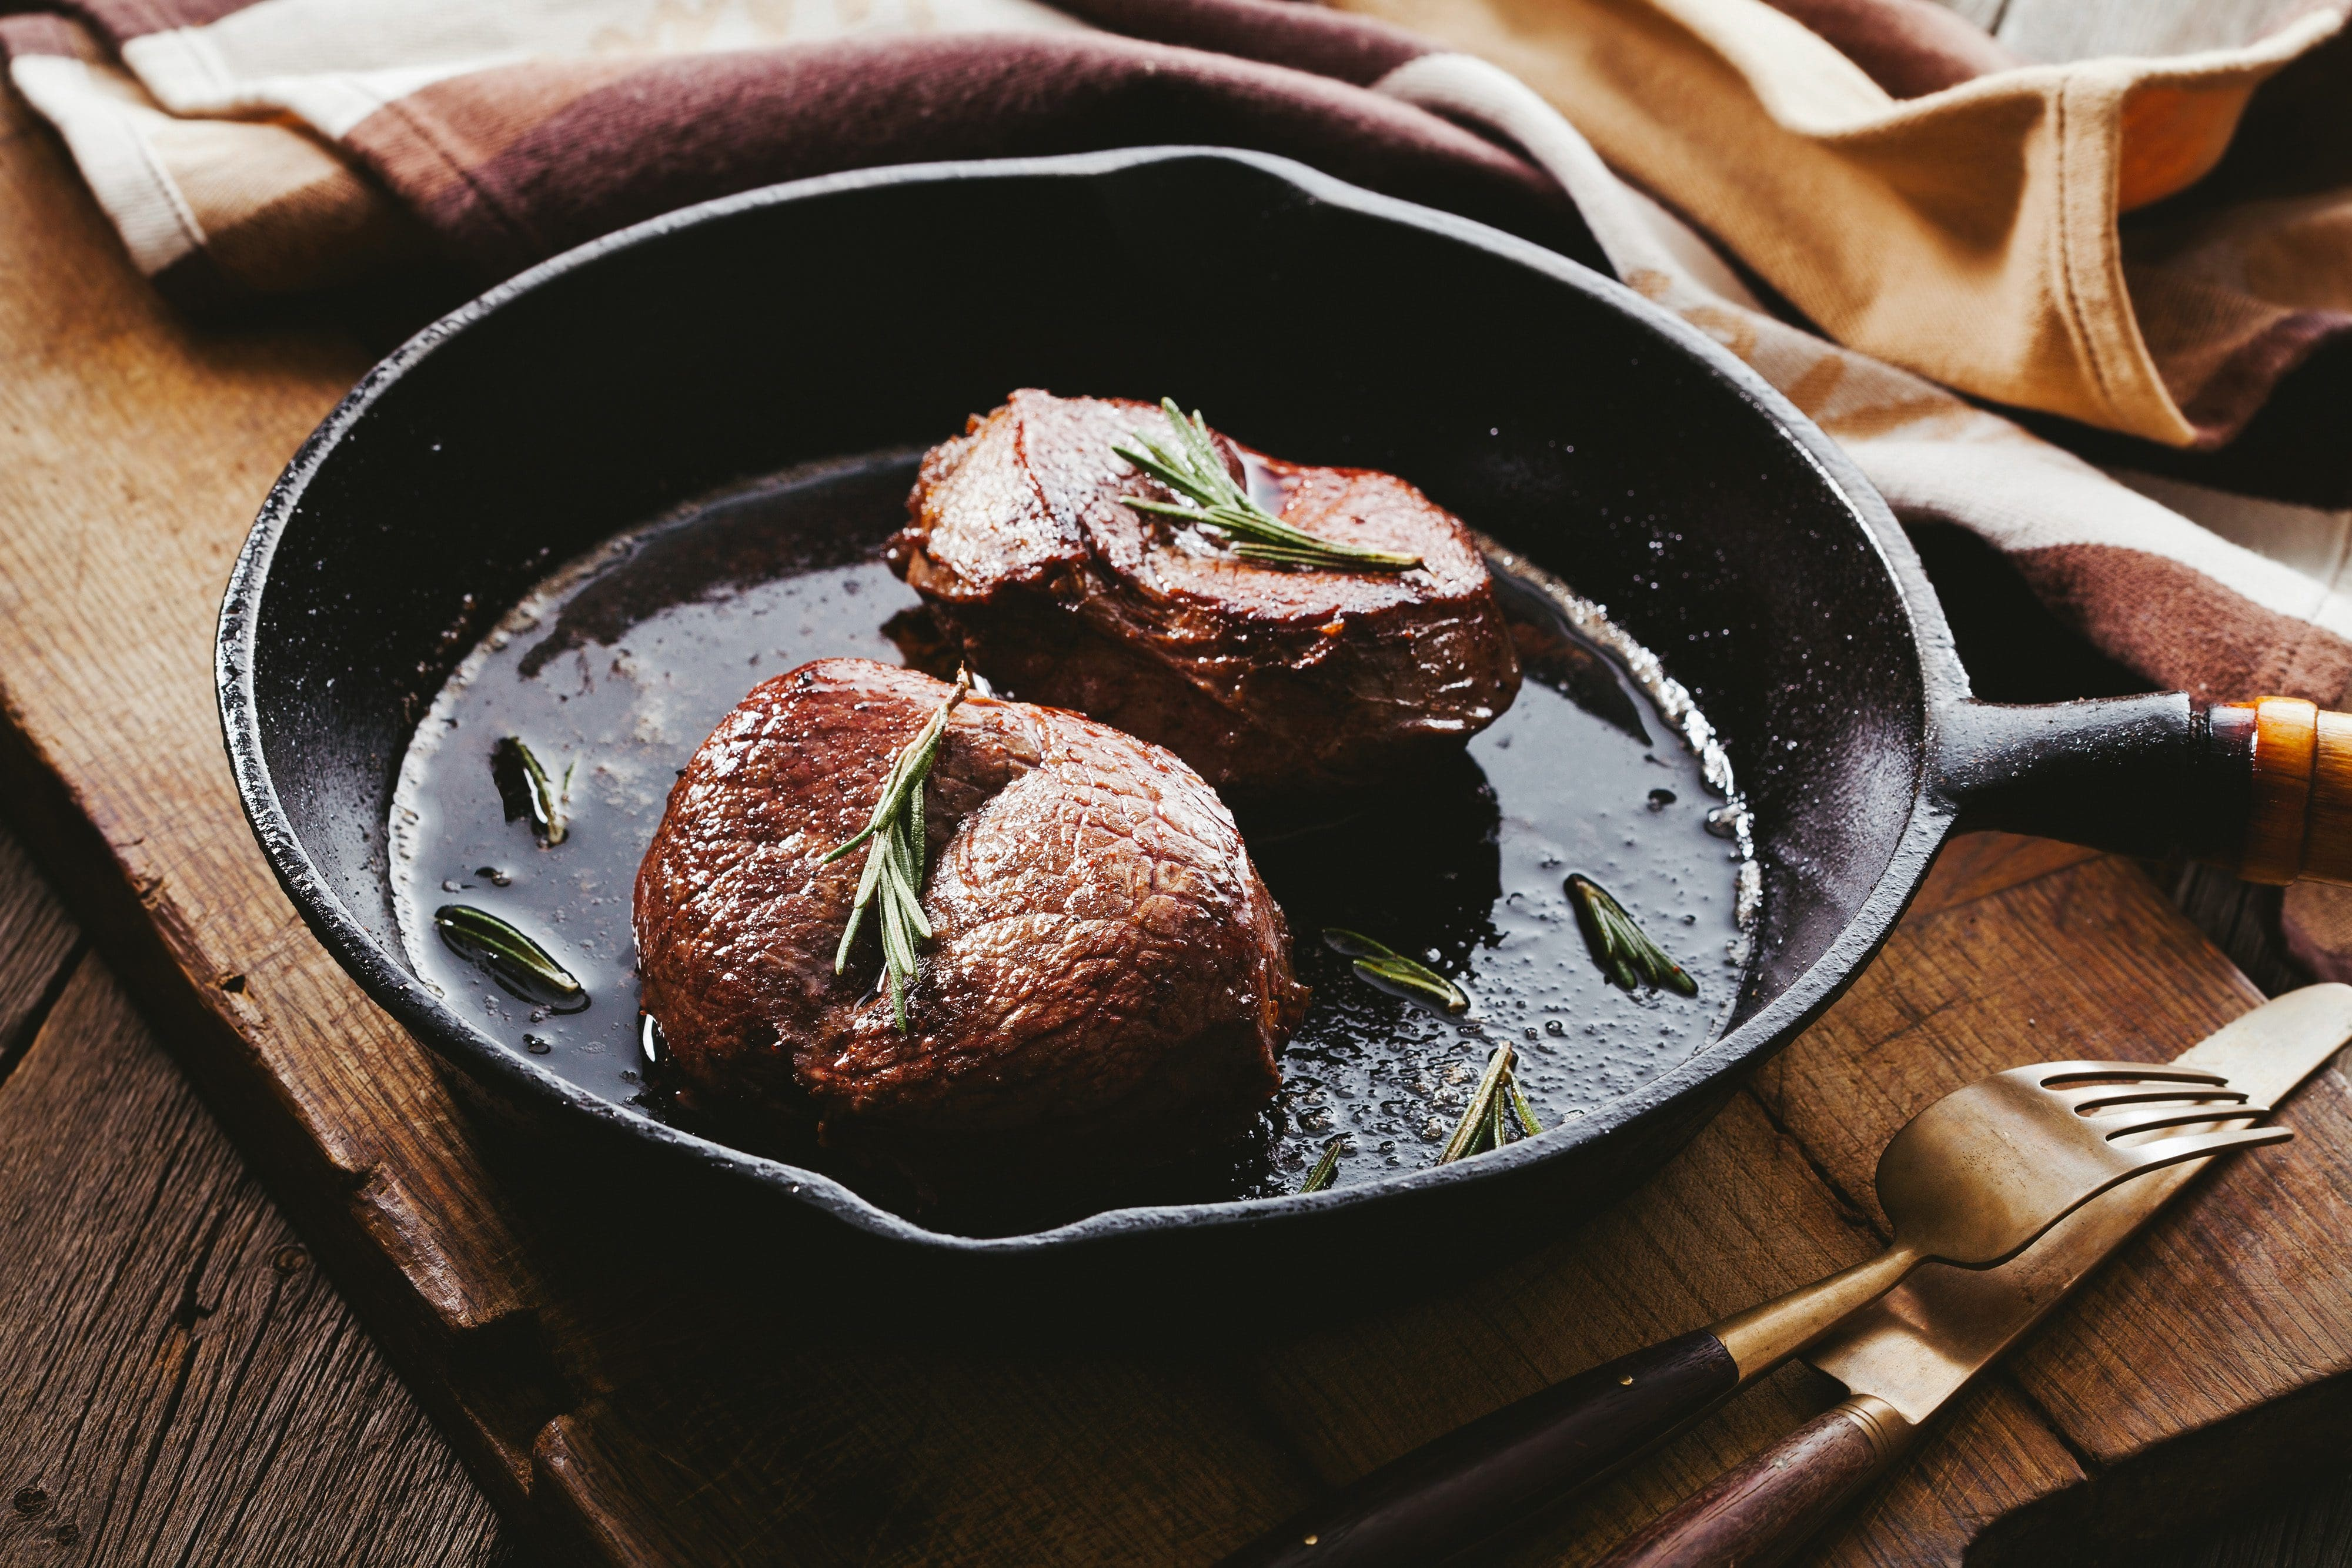 Two fillet steaks topped with rosemary in a skillet at Cocina Rivero